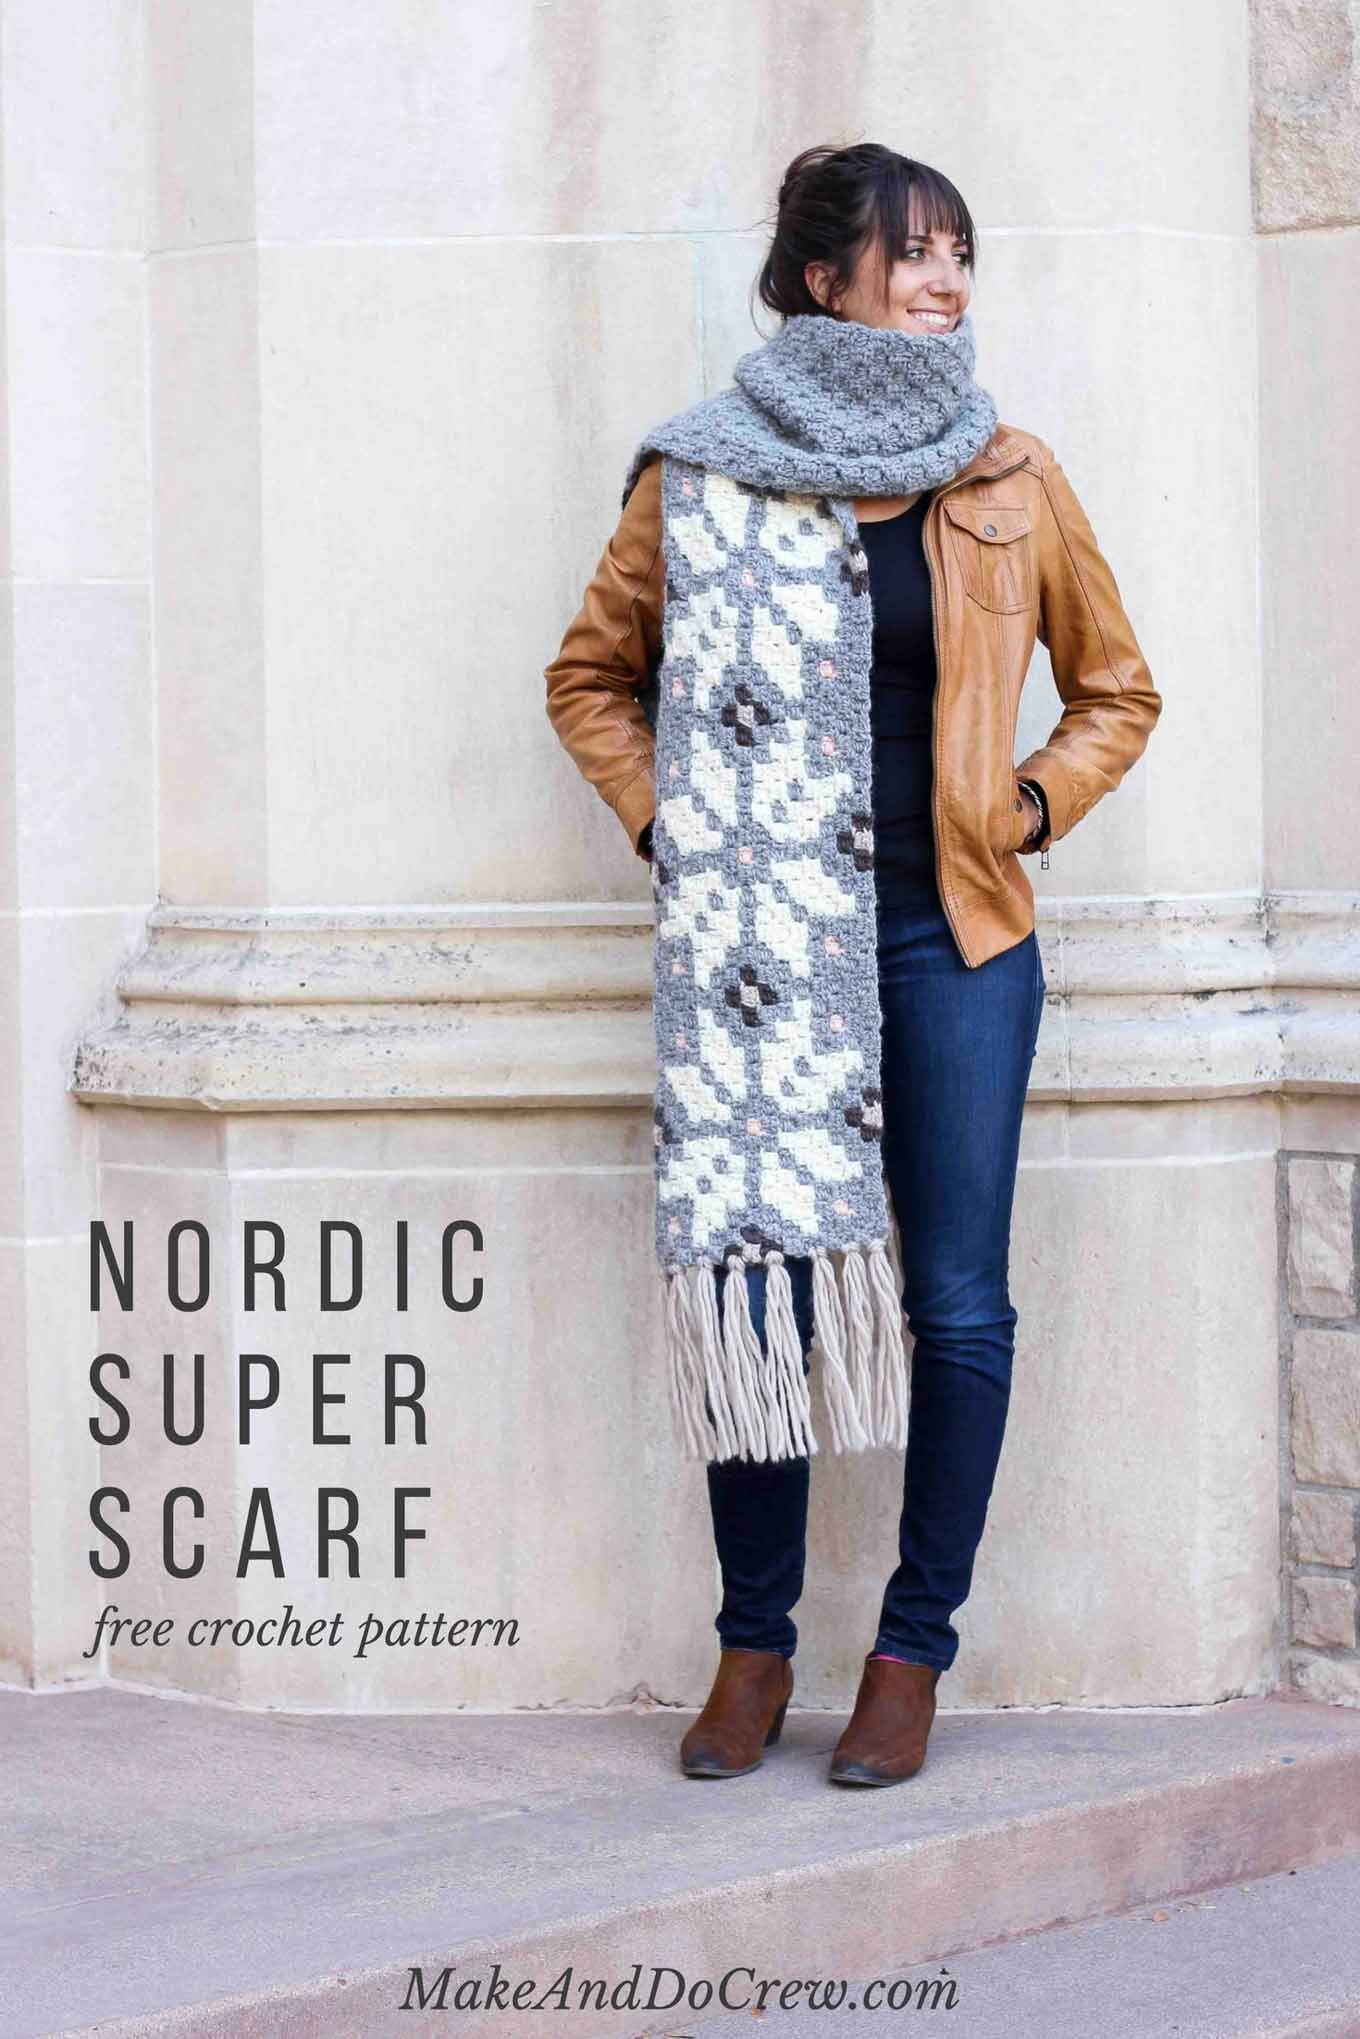 Nordic crochet super scarf free pattern make do crew whether you live in the north pole or just want to jump on the super scarf bankloansurffo Image collections